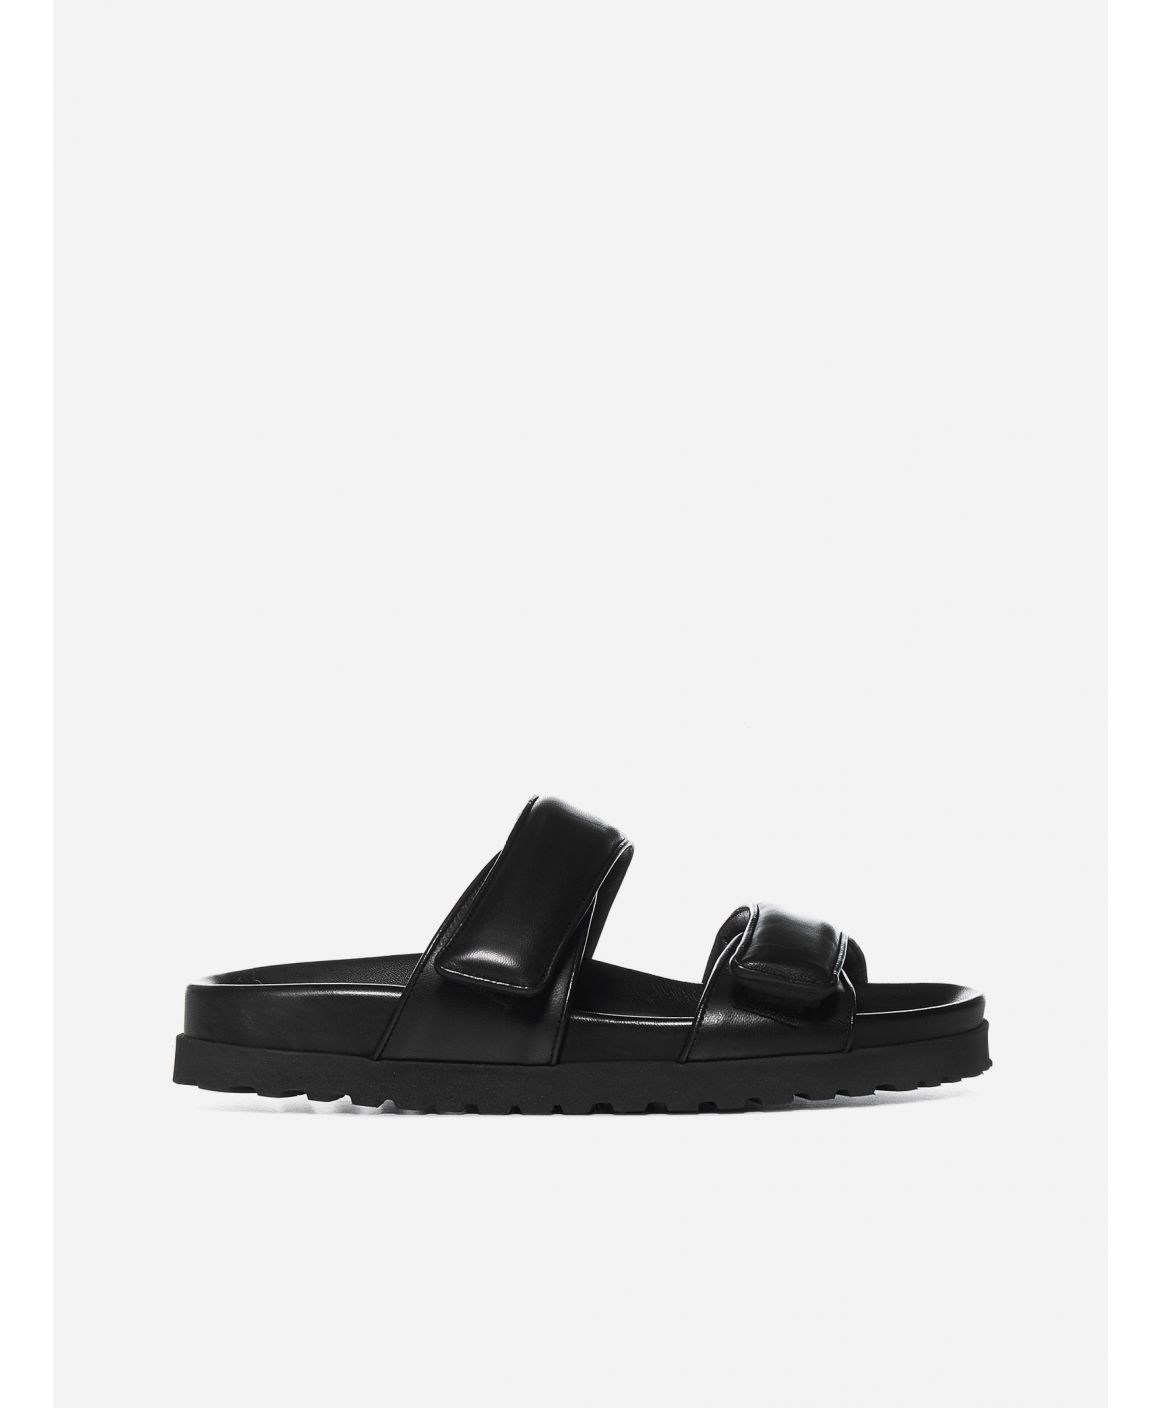 Perni 11 leather platform sandals